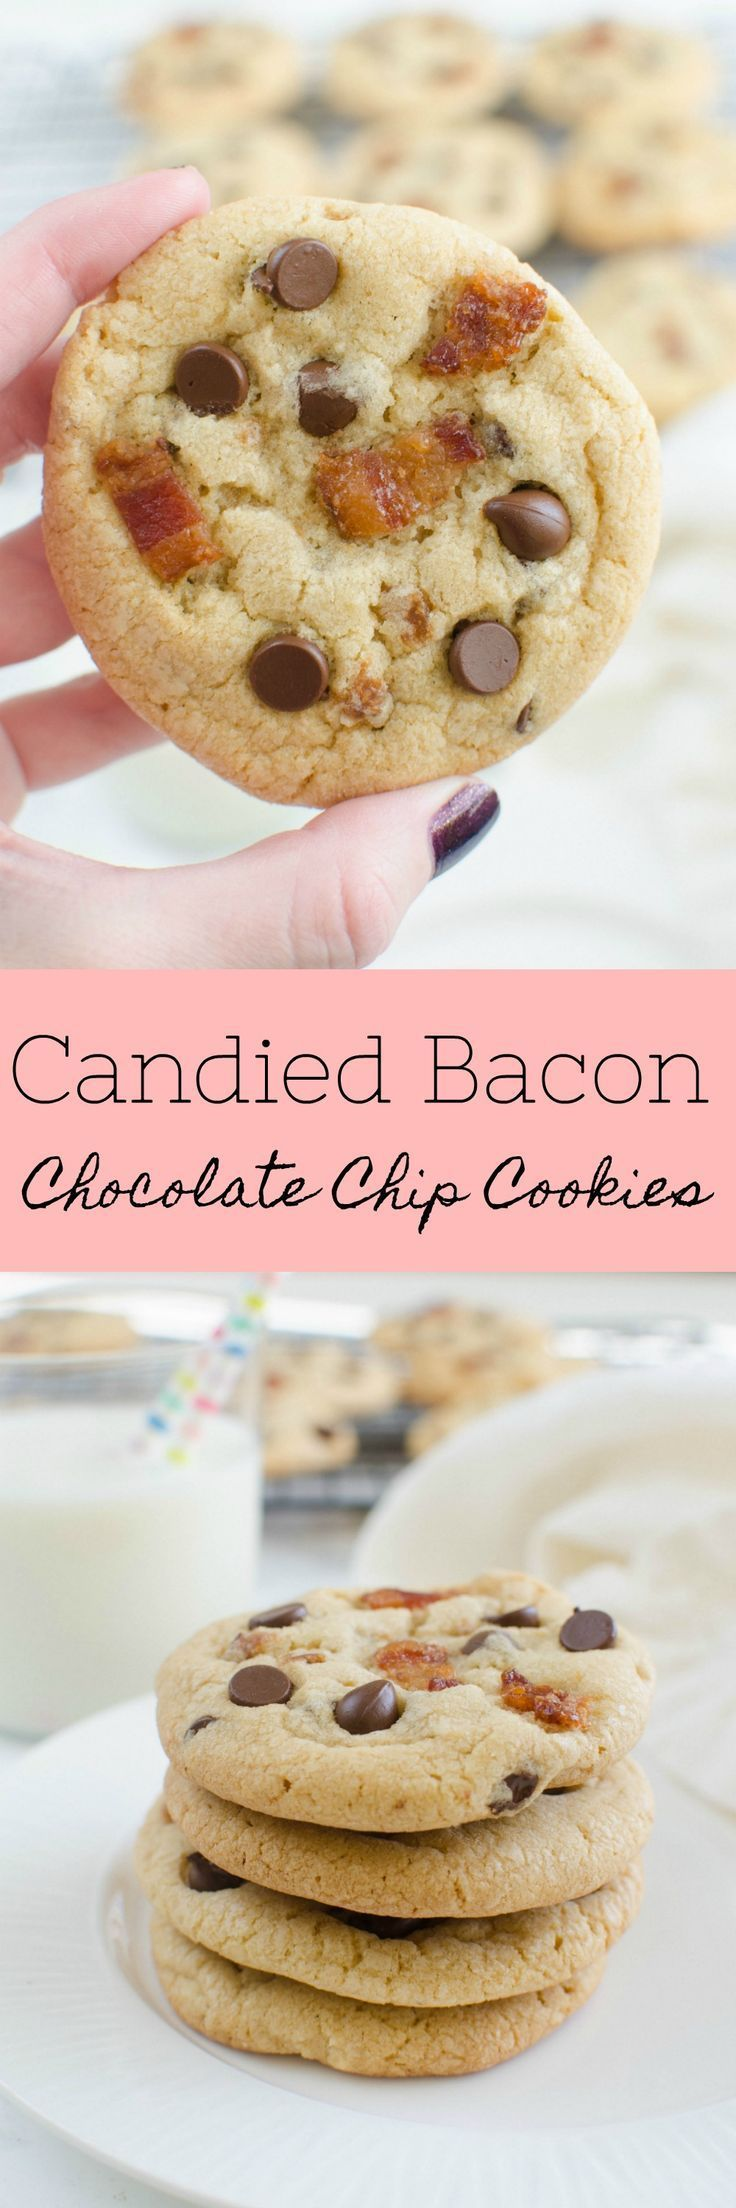 389 best Cookies Class images on Pinterest   Chocolate candies ...